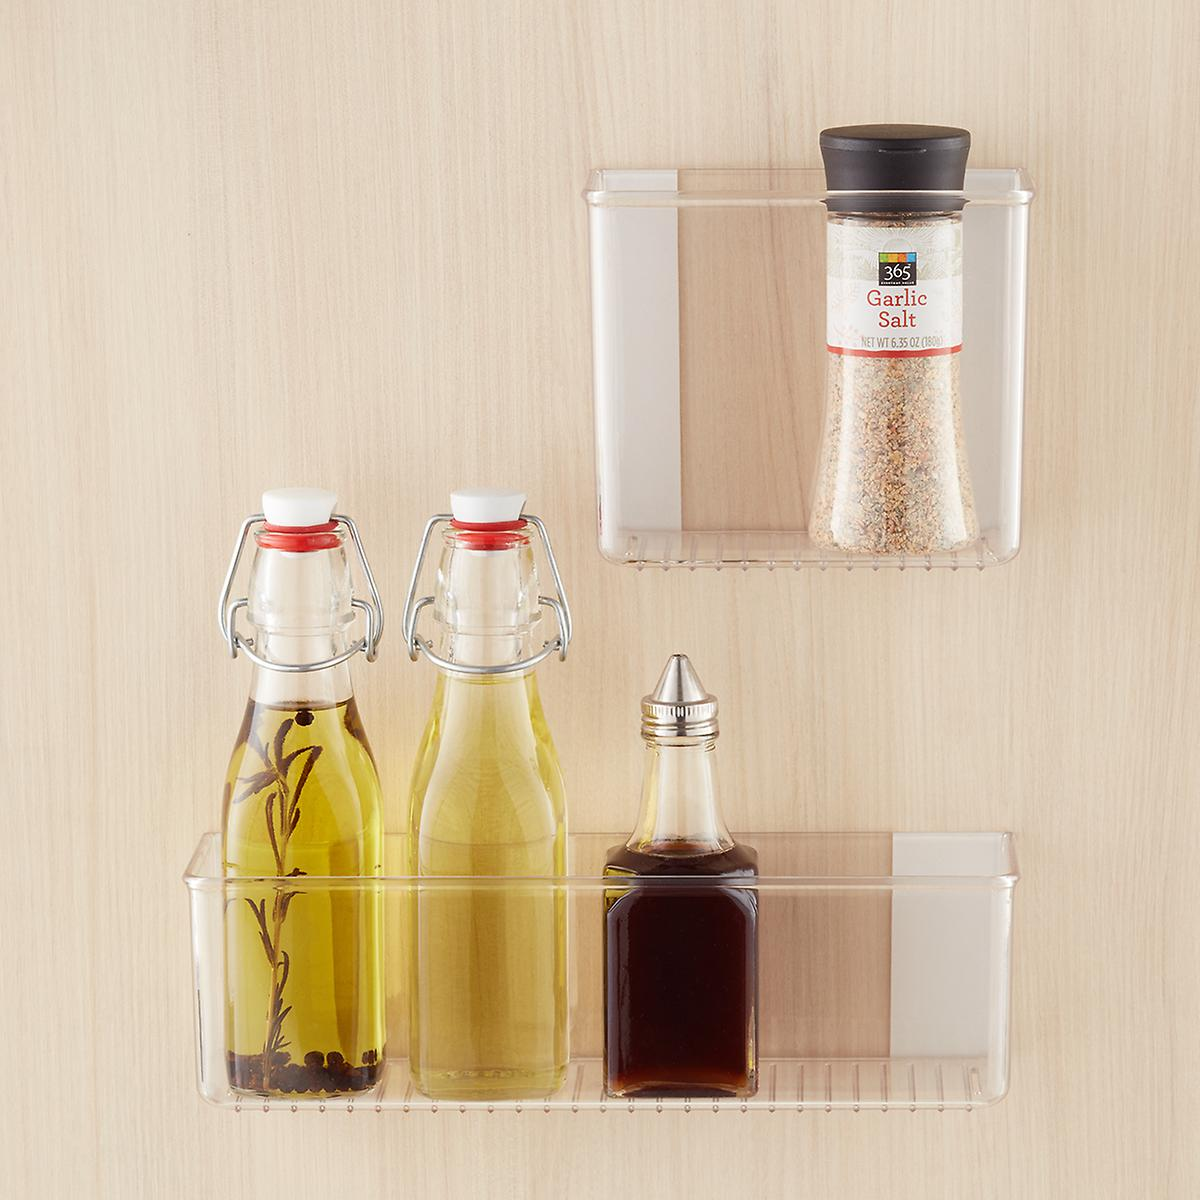 Kitchen Shelf Organiser: InterDesign Affixx Adhesive Organizer Bins